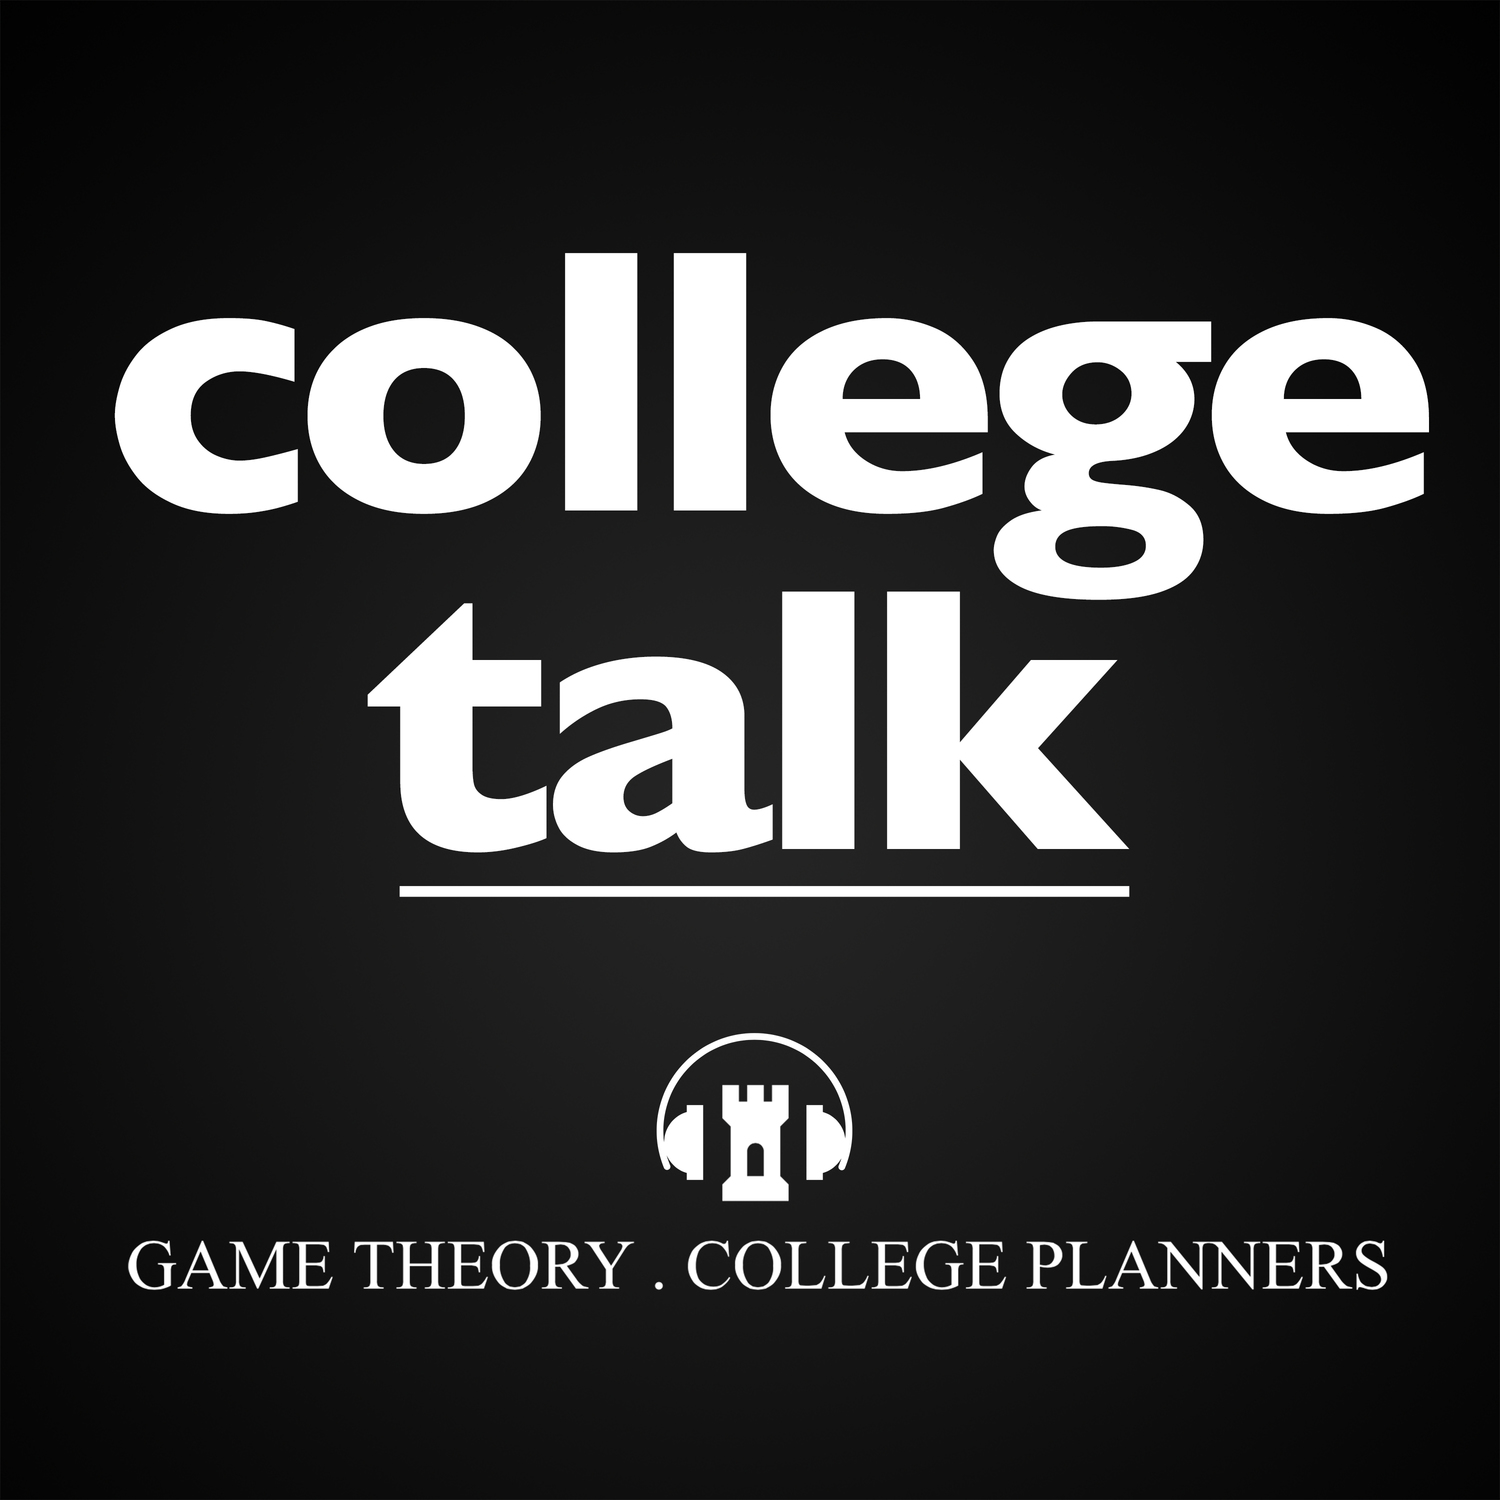 We broadcast our ideas, talk to experts in the industry and check-in with our families. - Game Theory . College Planners